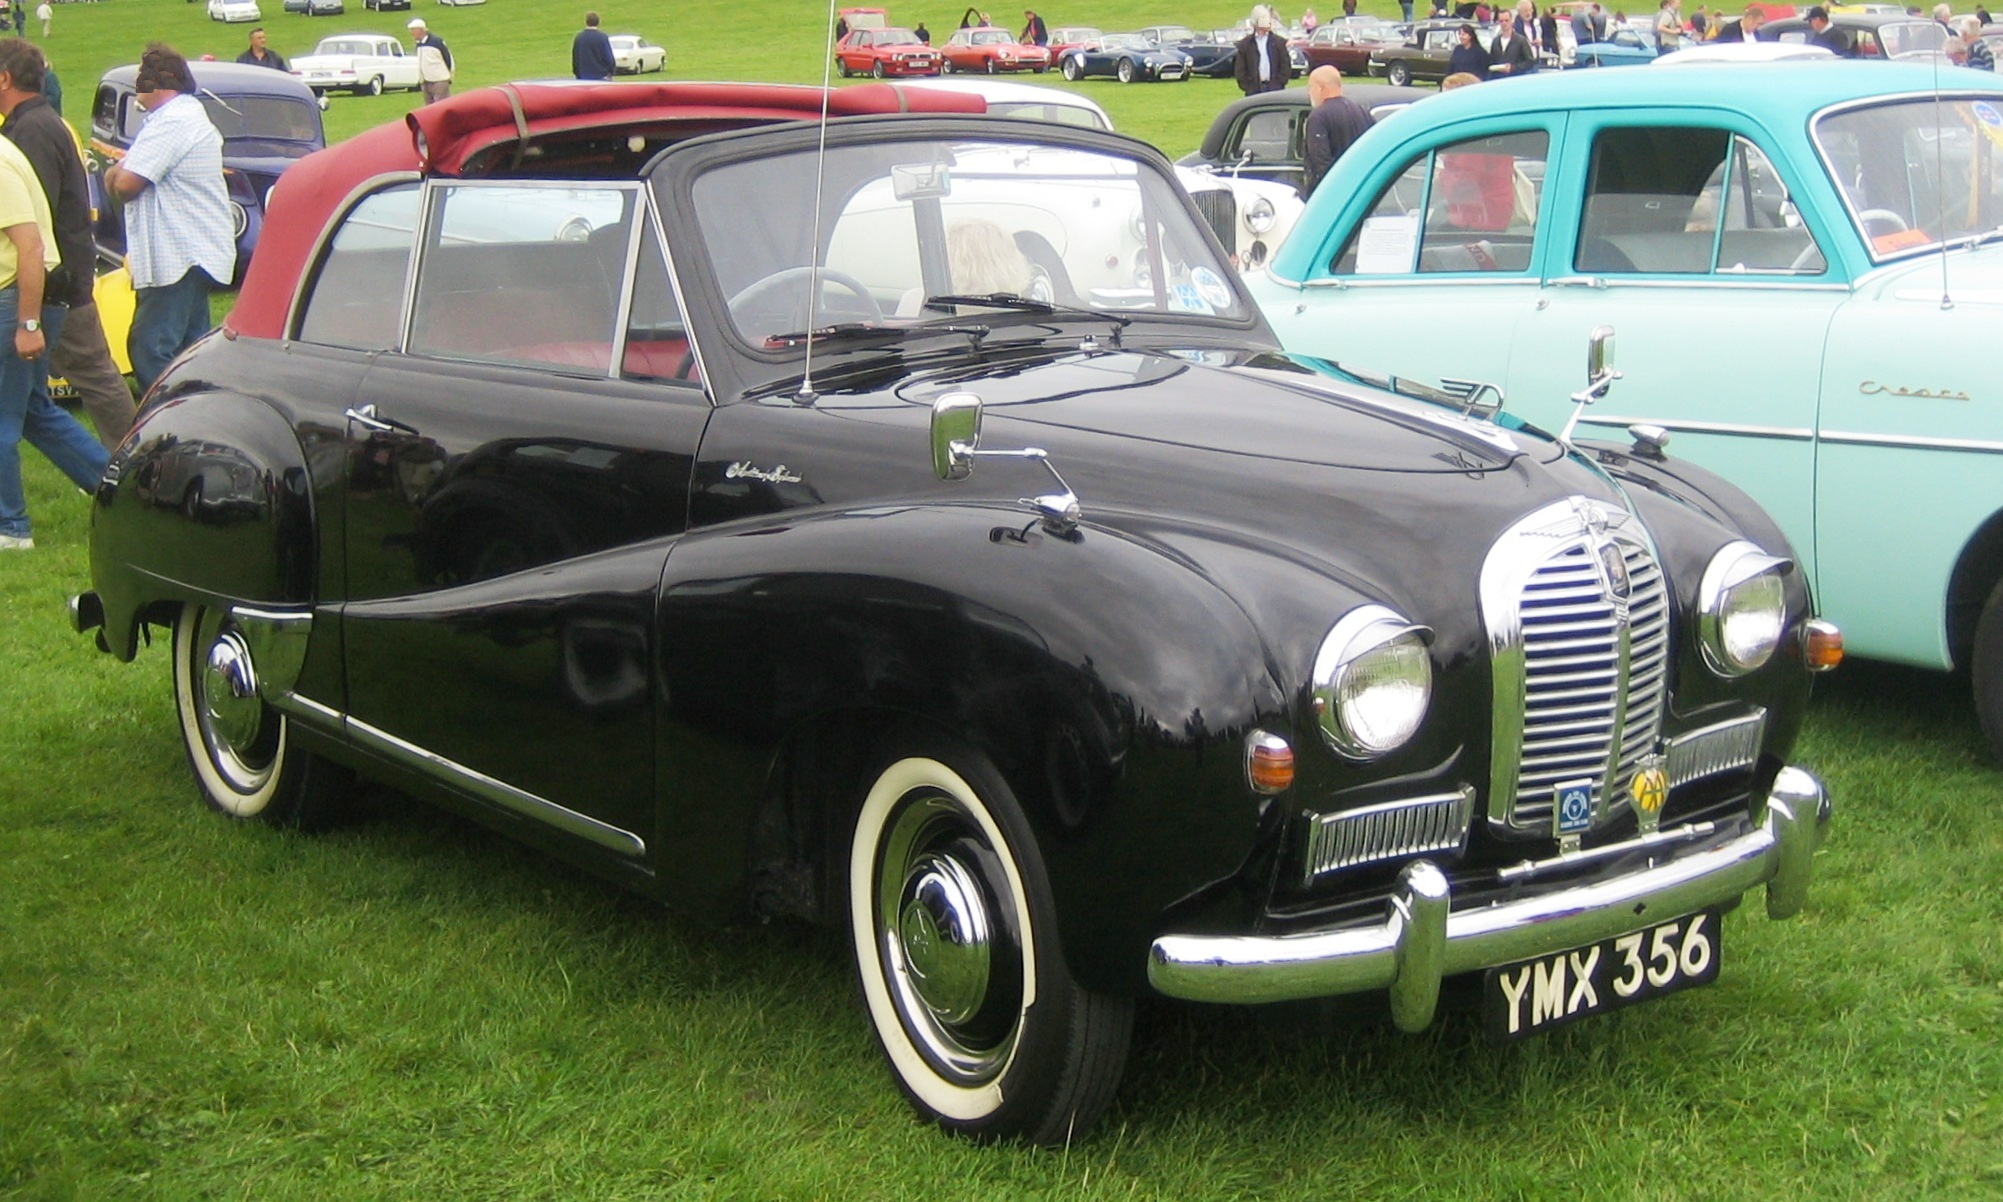 File:Austin A40 Somerset convertible ca 1954.jpg - Wikimedia Commons